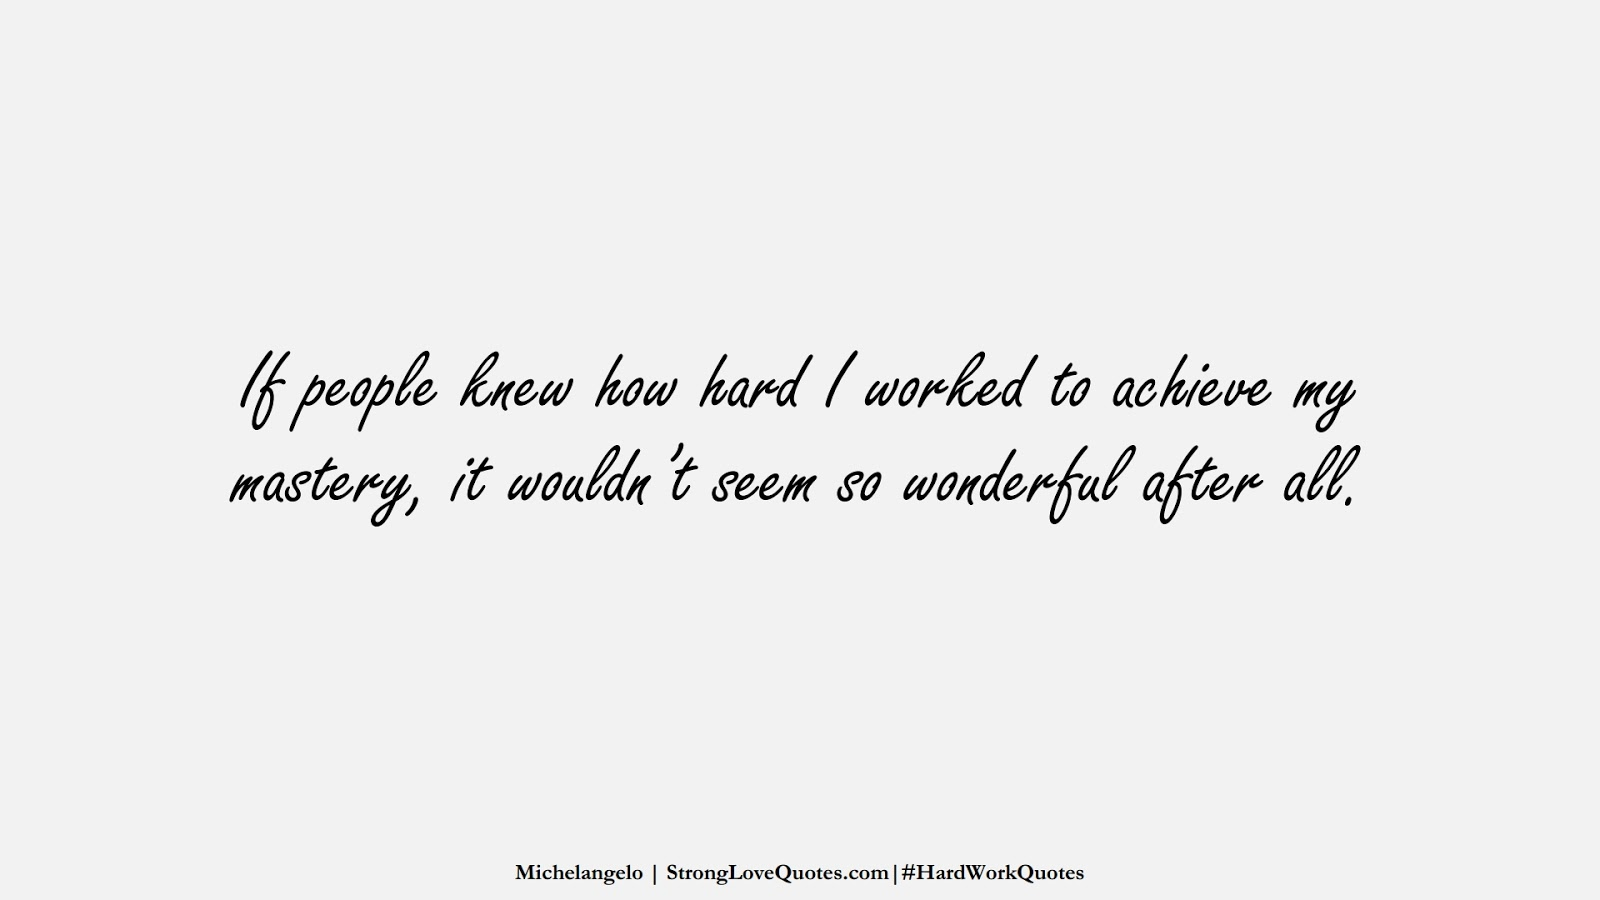 If people knew how hard I worked to achieve my mastery, it wouldn't seem so wonderful after all. (Michelangelo);  #HardWorkQuotes